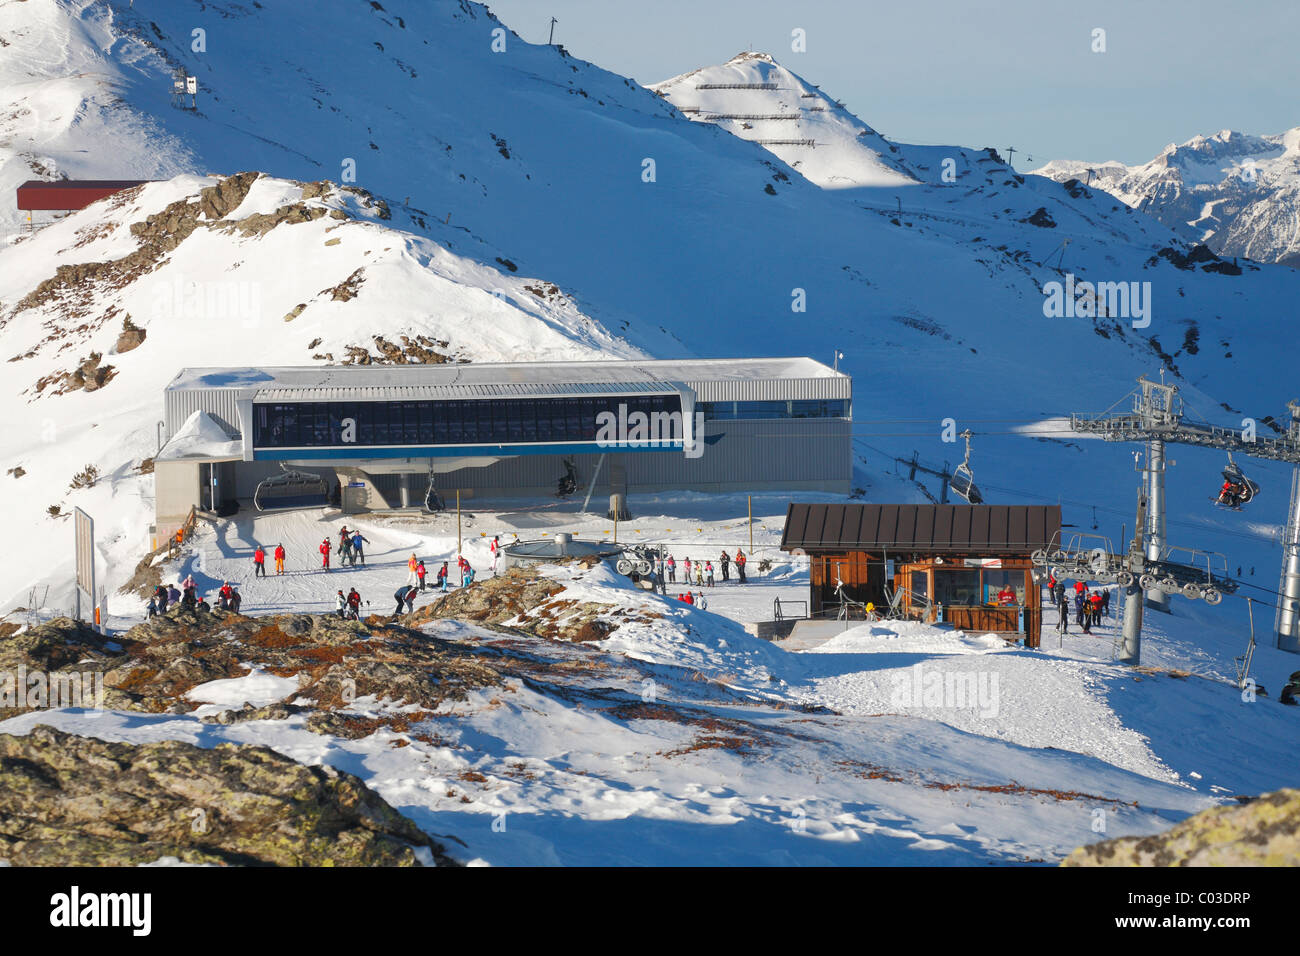 Austria, skiing on the hill at Hochzillertal, Europe - Stock Image